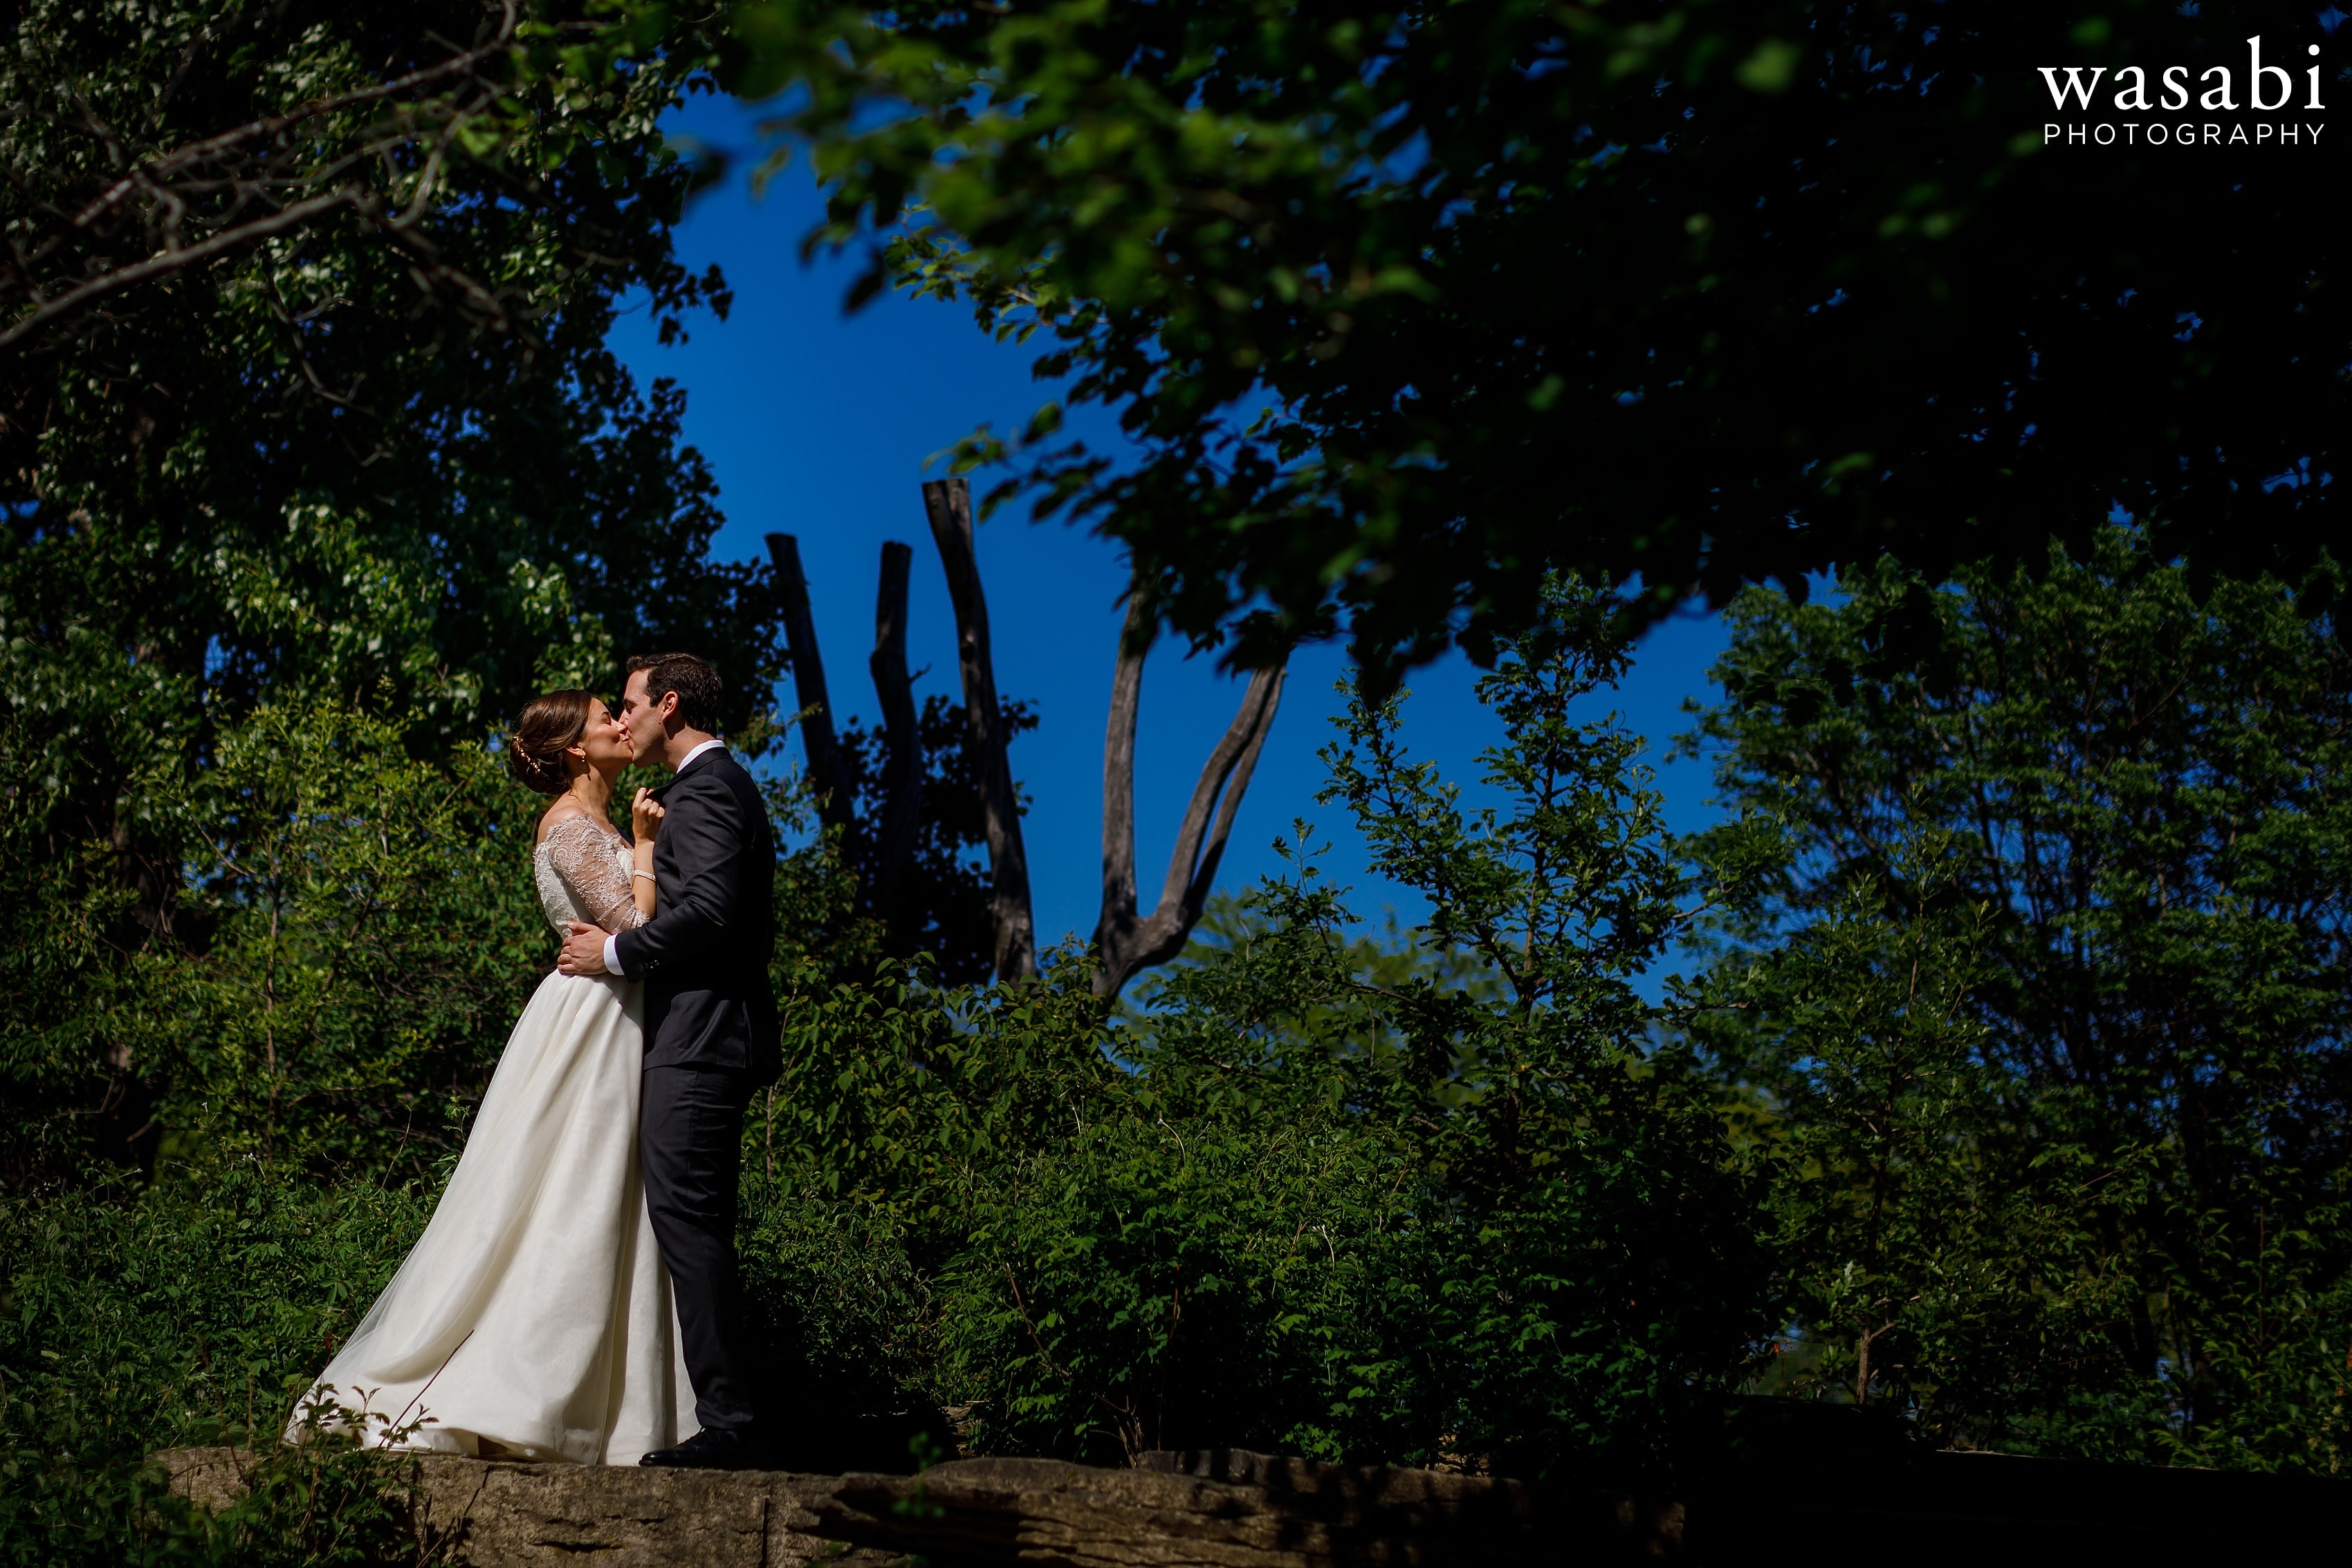 Zoe-and-Justin-pose-for-a-portrait-in-the-Alfred-Caldwell-Lily-Pool-at-Lincoln-Park-Conservancy-on-their-wedding-day-15